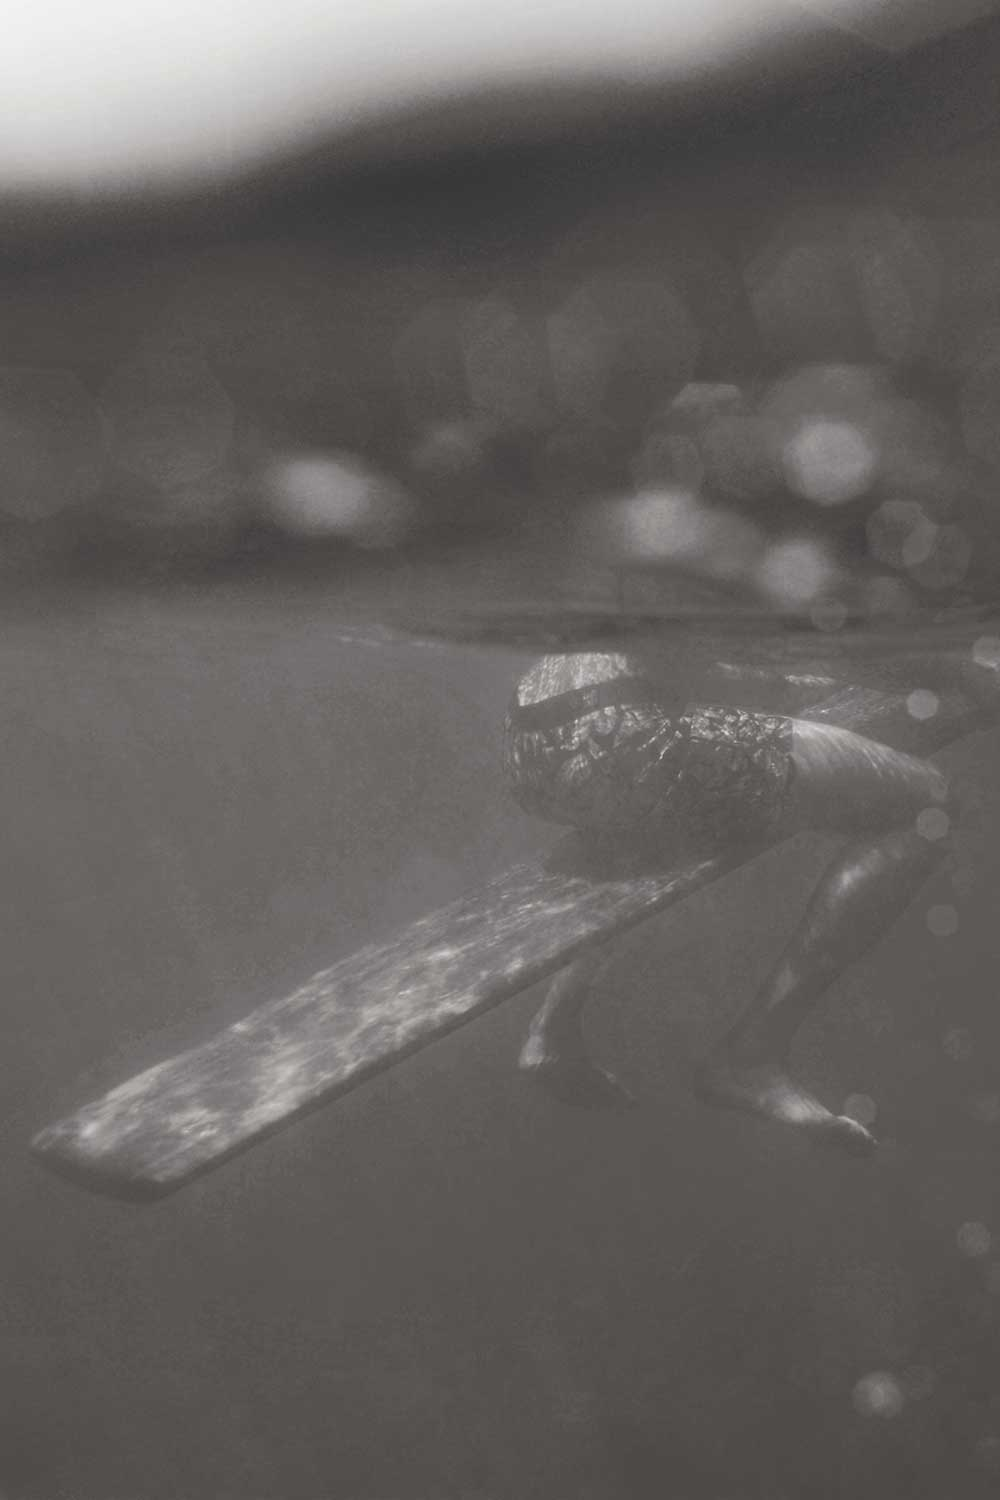 underwater photo of surfer's legs and surfboard